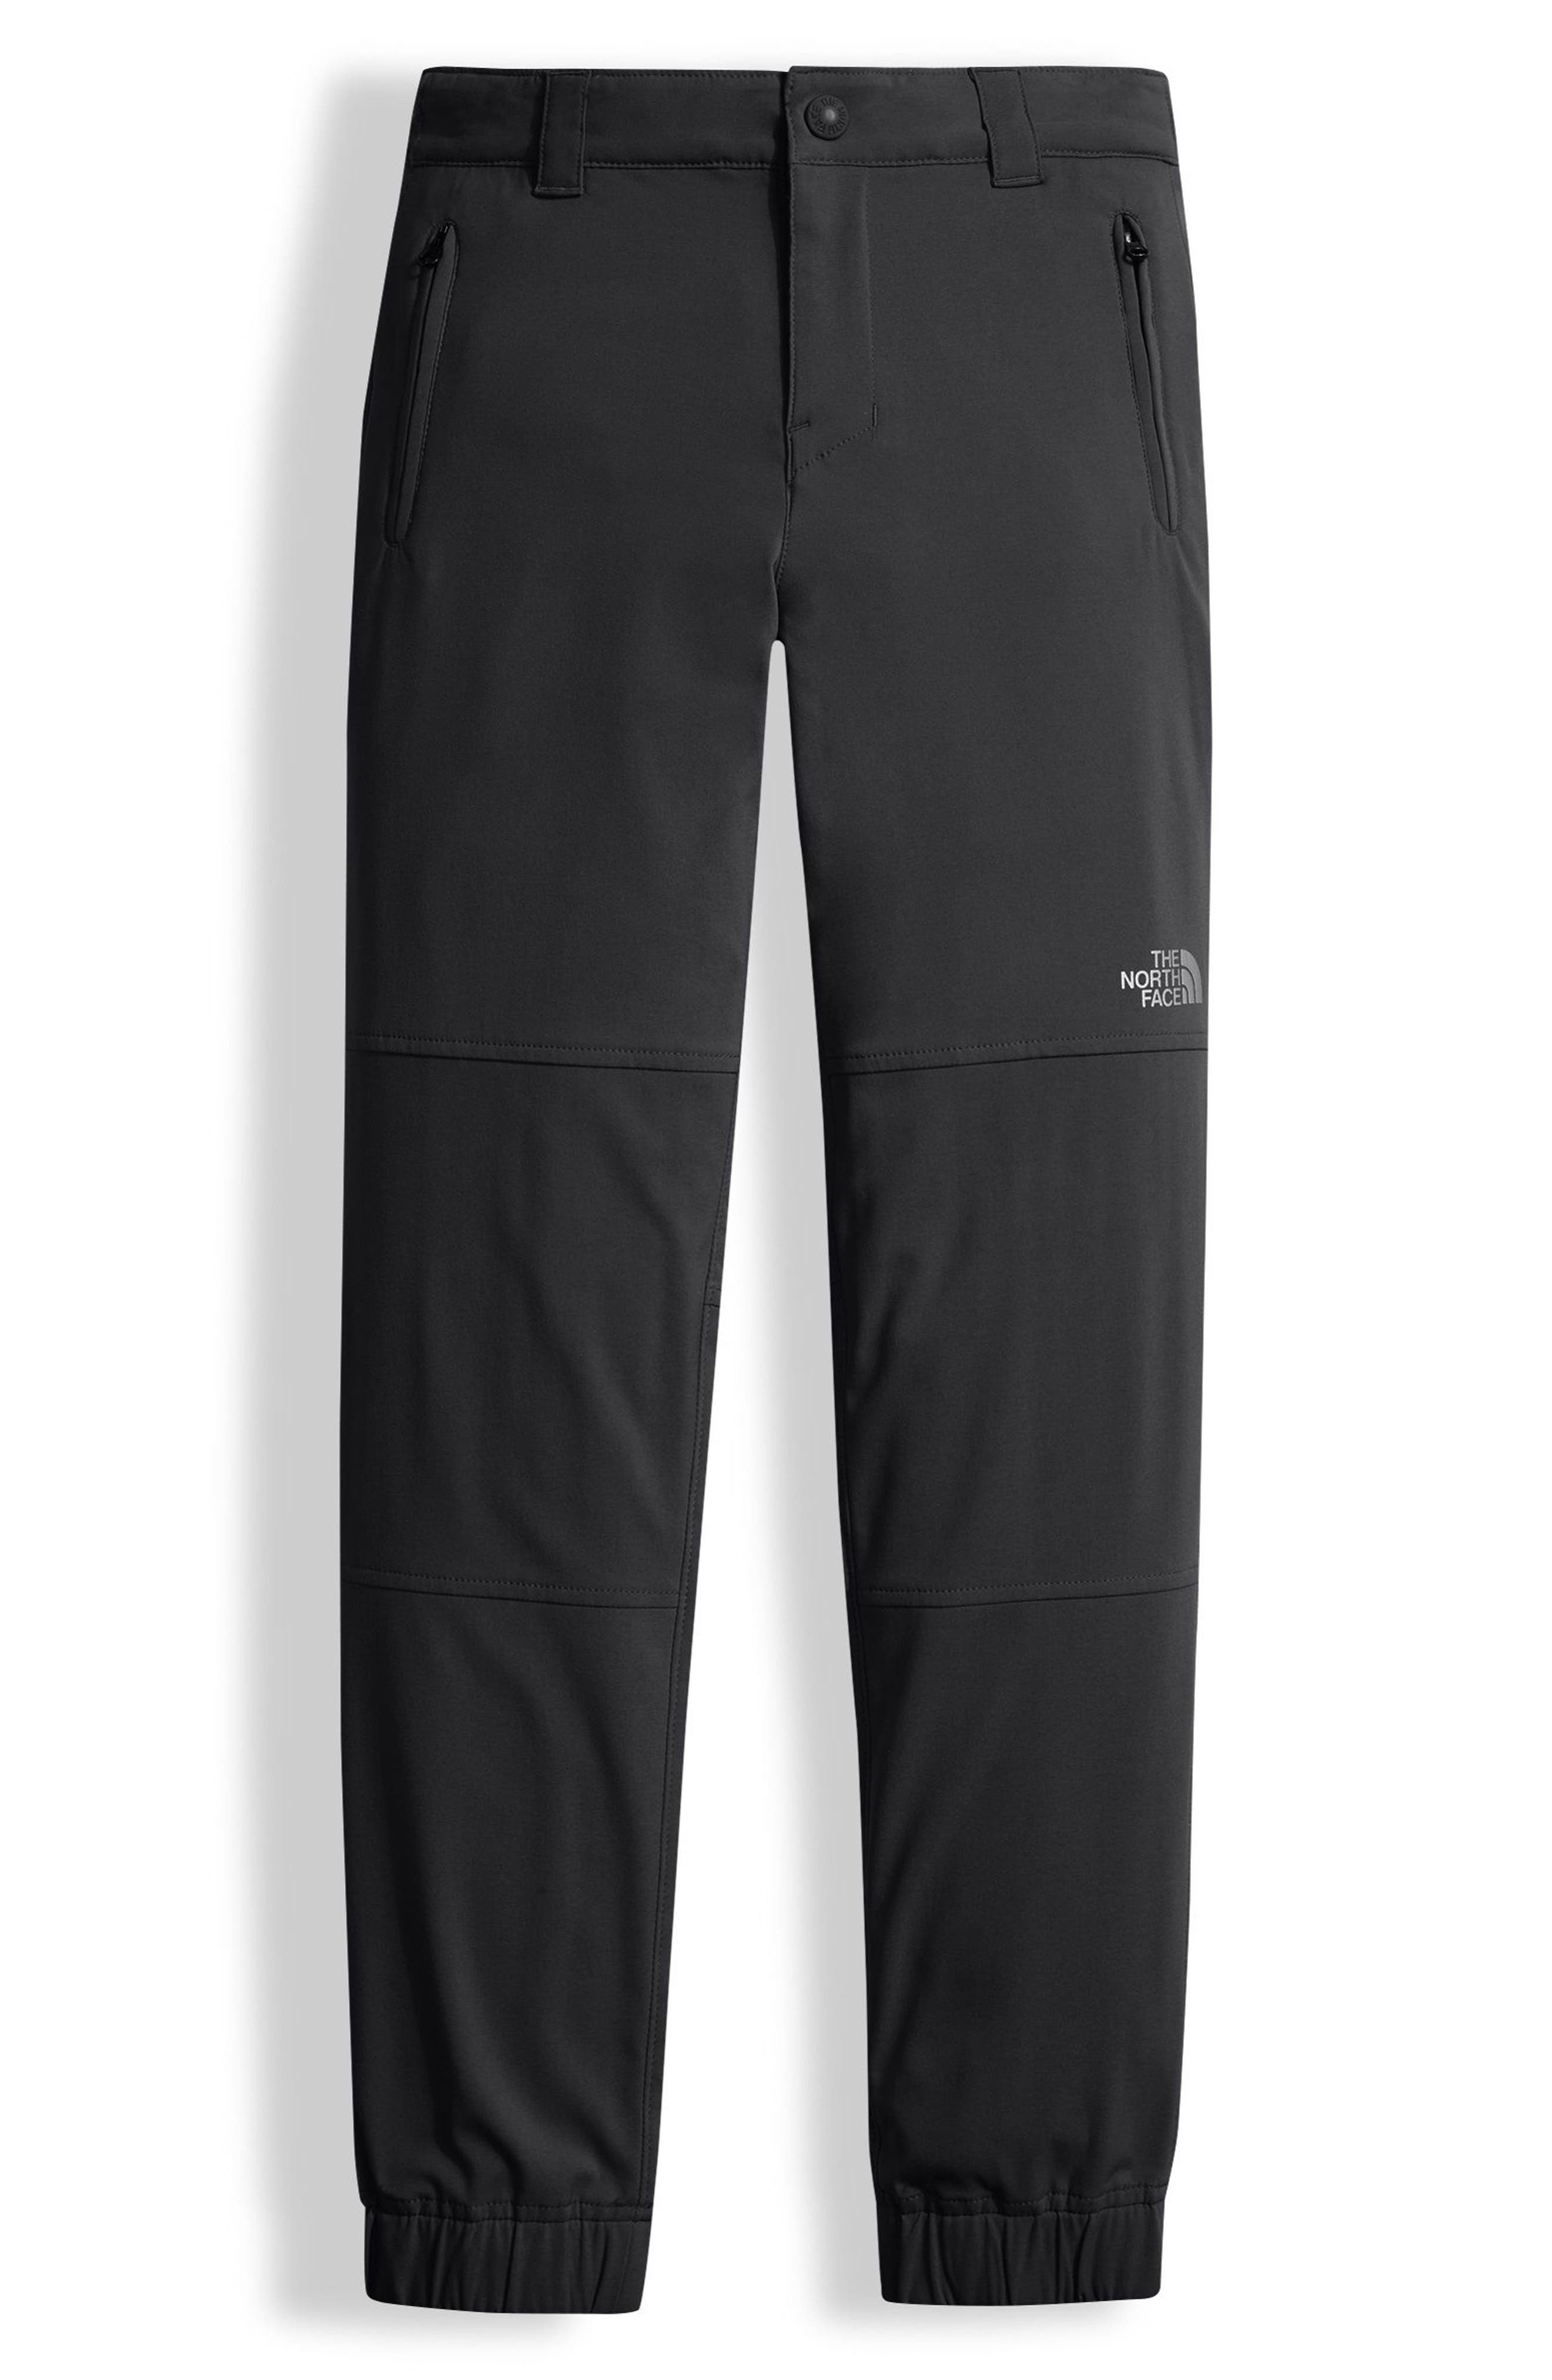 Alternate Image 1 Selected - The North Face Carson Regular Fit Water Repellent Pants (Big Boys)